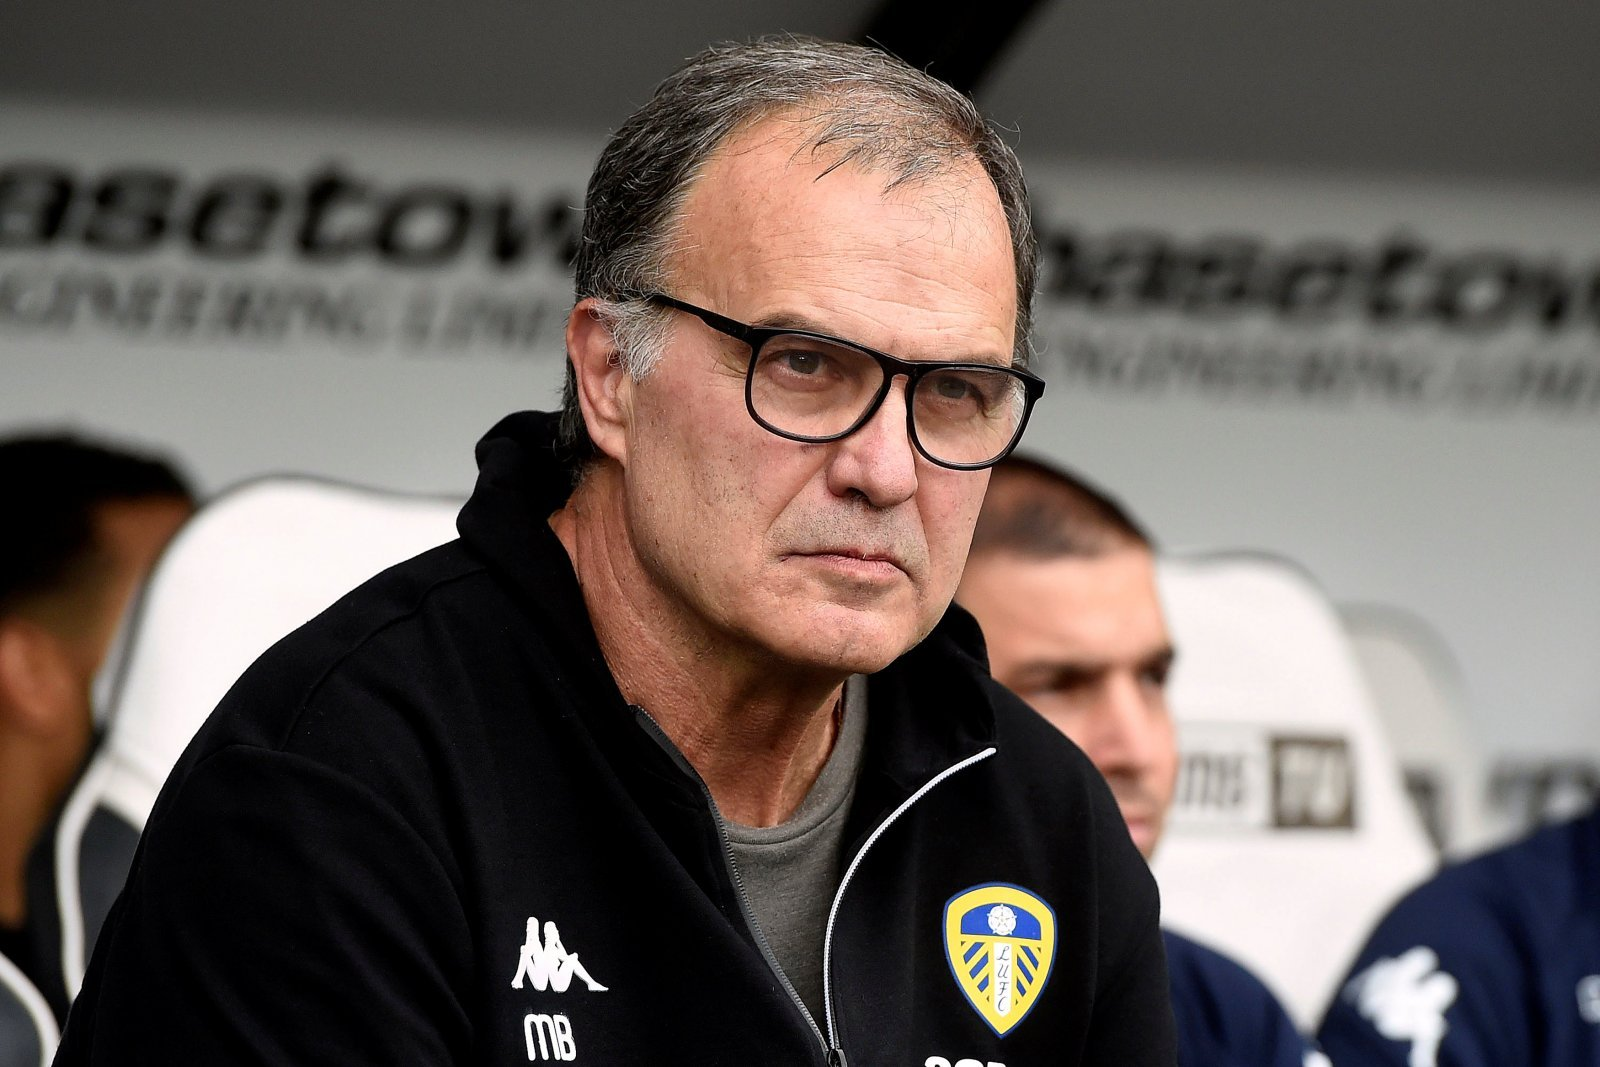 Bielsa needs to force these 2 Leeds flops out imminently if they don't up their game in training